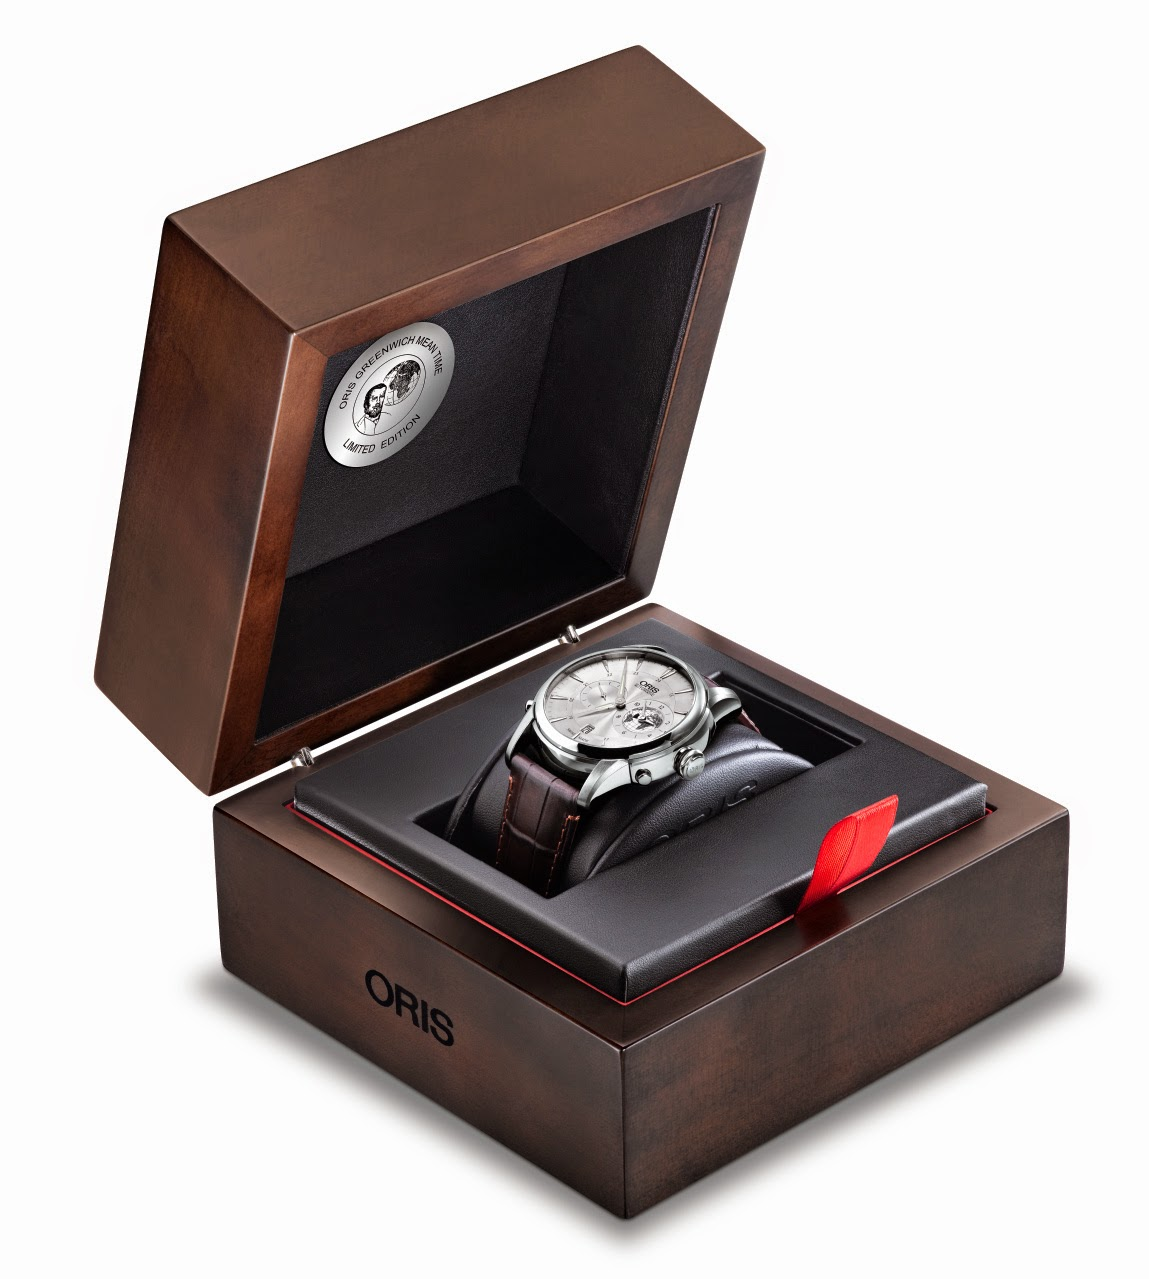 ORIS Greenwich Mean Time Limited Edition - Box